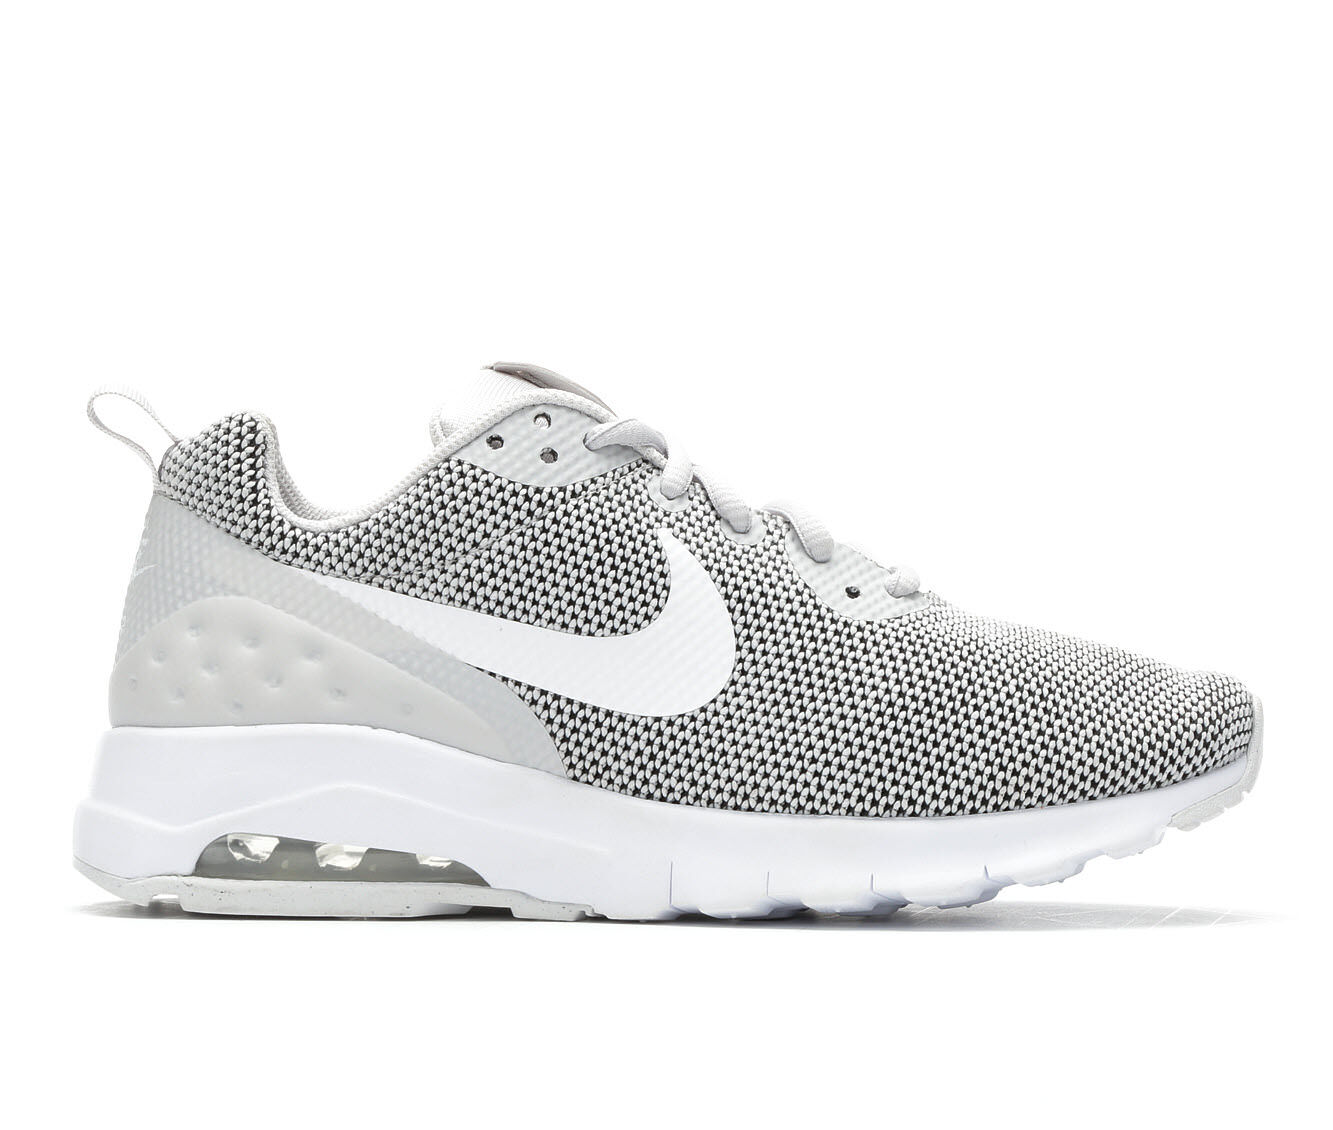 9f21bcc5be6 6e12d bebc3  new arrivals womens nike air max motion low se sneakers 419ff  70b1a